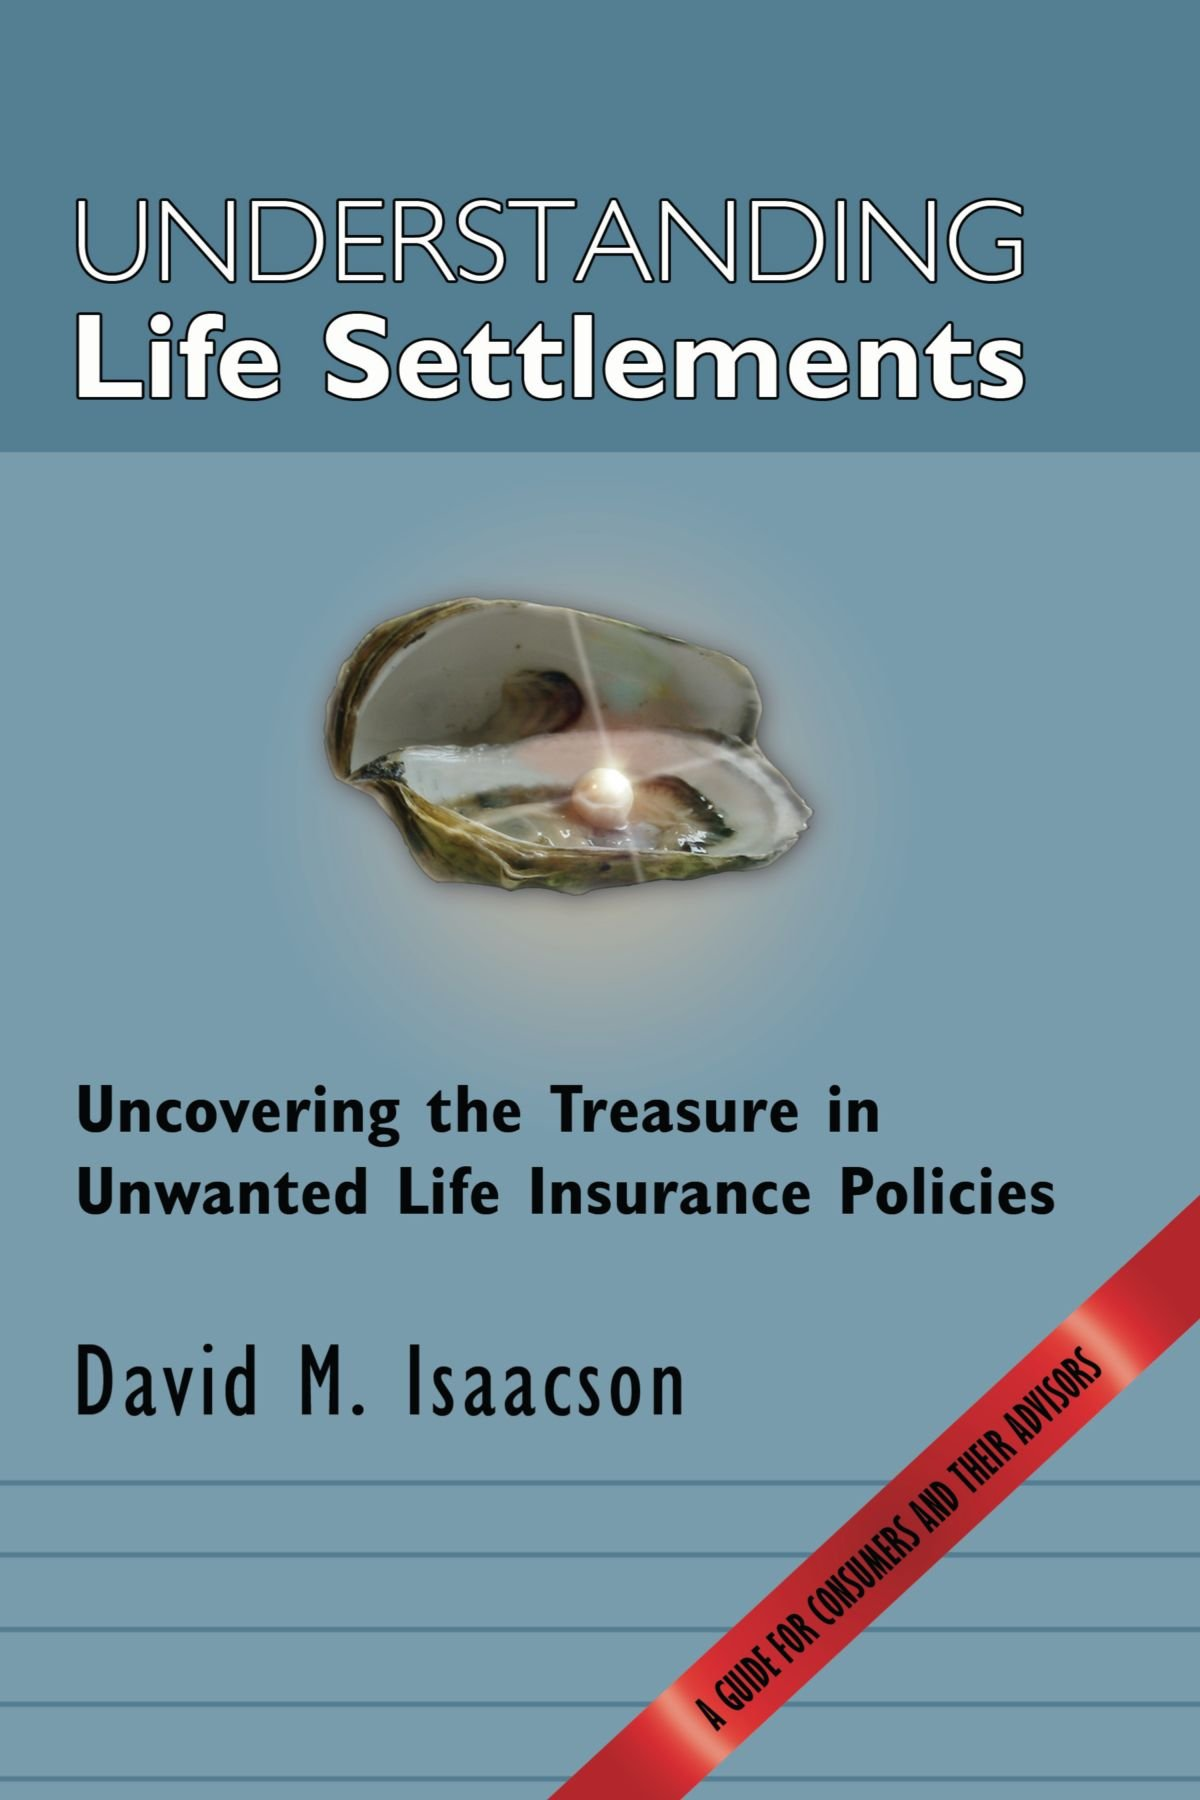 Understanding Life Settlements: Uncovering the treasures in unwanted life insurance policies. A guide for consumers and their advisors